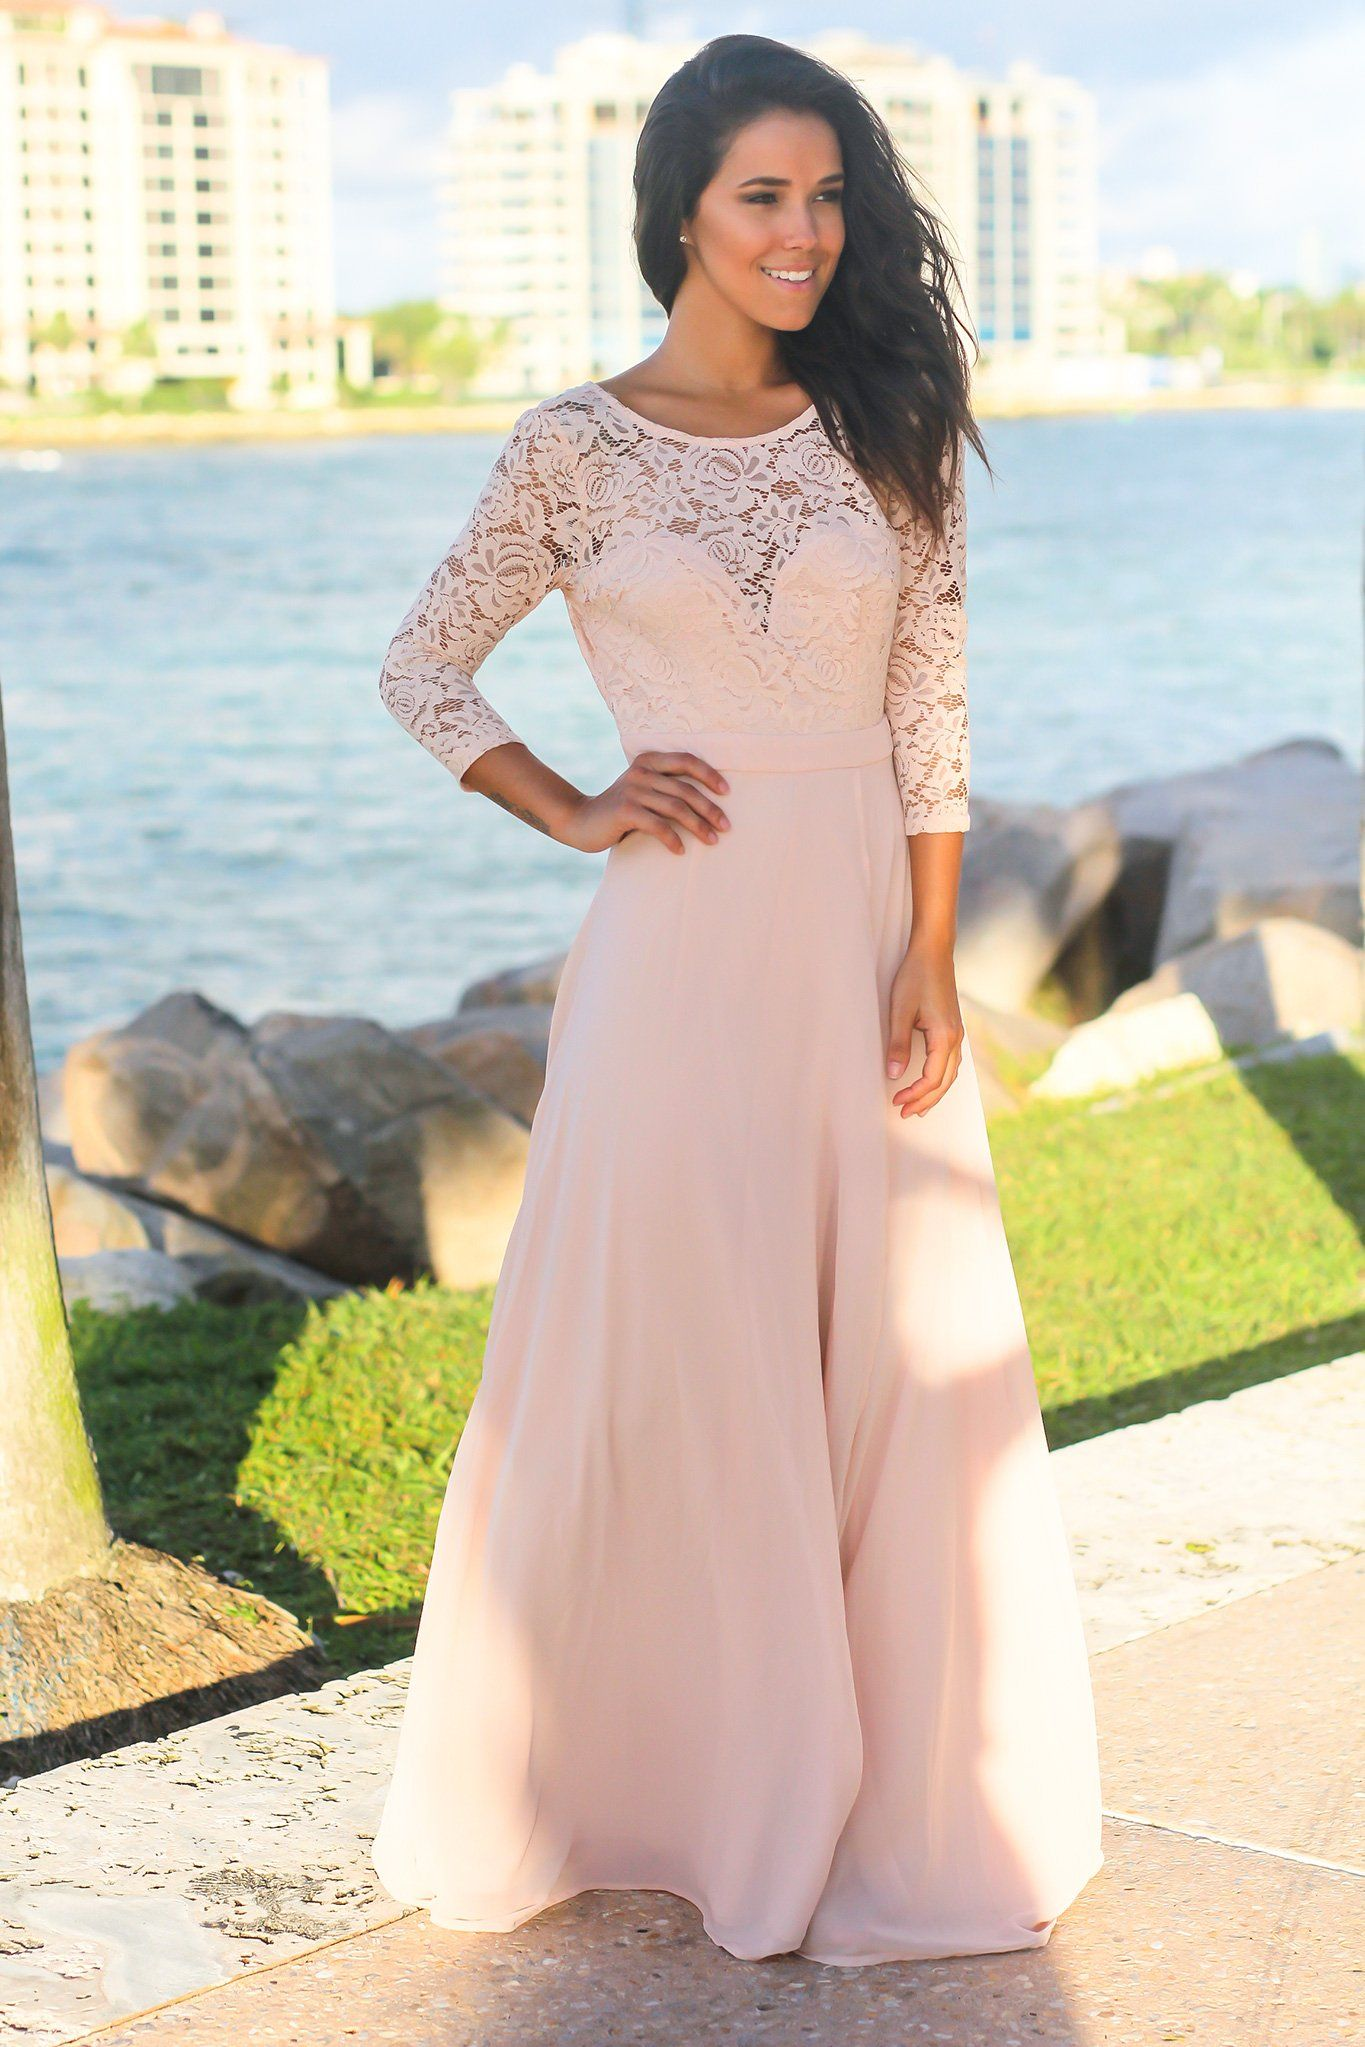 ed209d13af Blush Lace Maxi Dress with 3/4 Sleeves | Maxi Dresses – Saved by the Dress